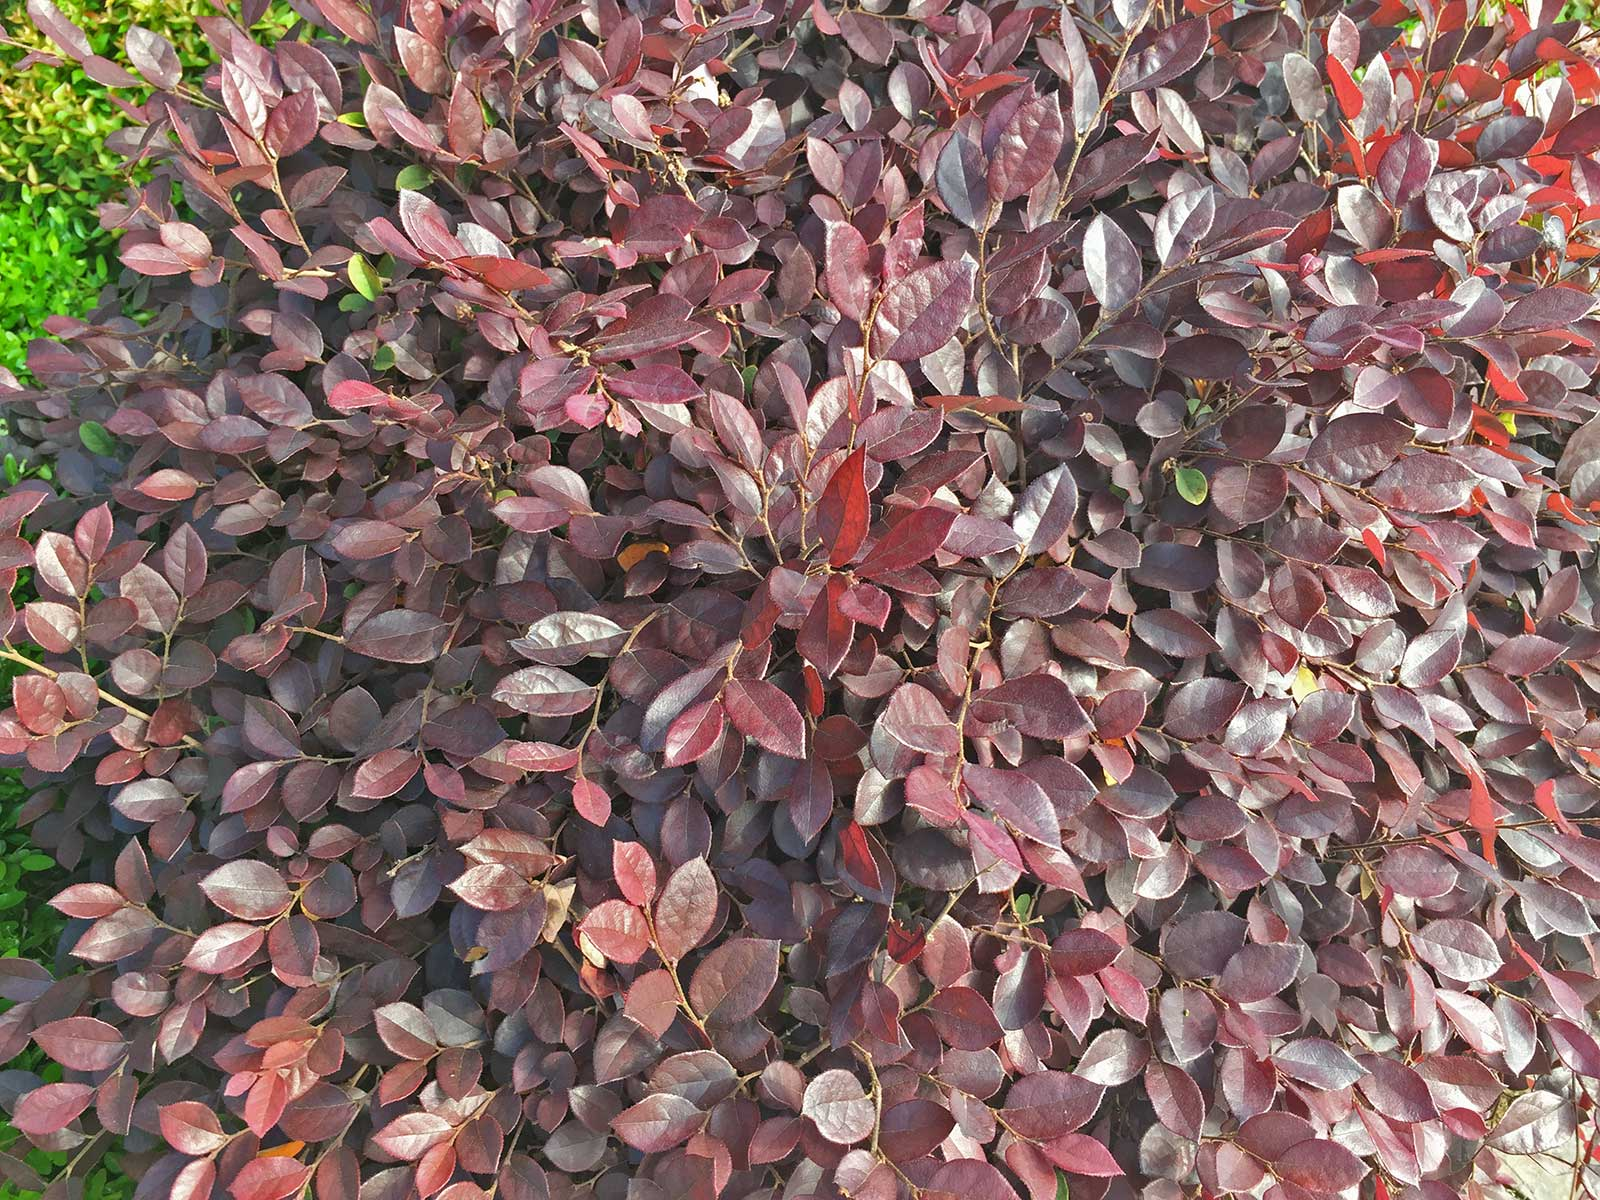 In certain varieties, deep burgundy leaves can dominate the entire shrub.